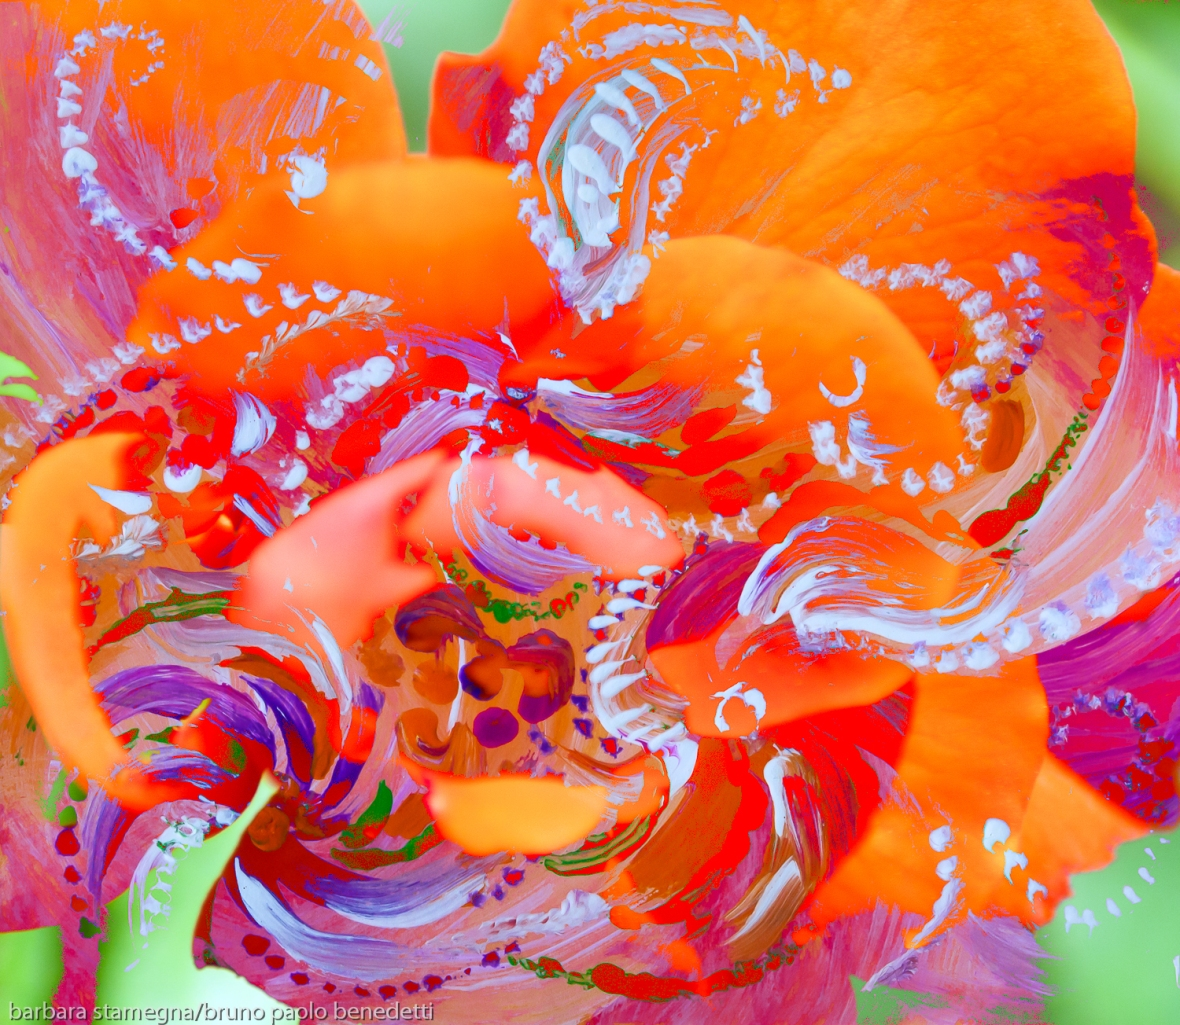 floral swirling dynamic abstract image with moving shapes in